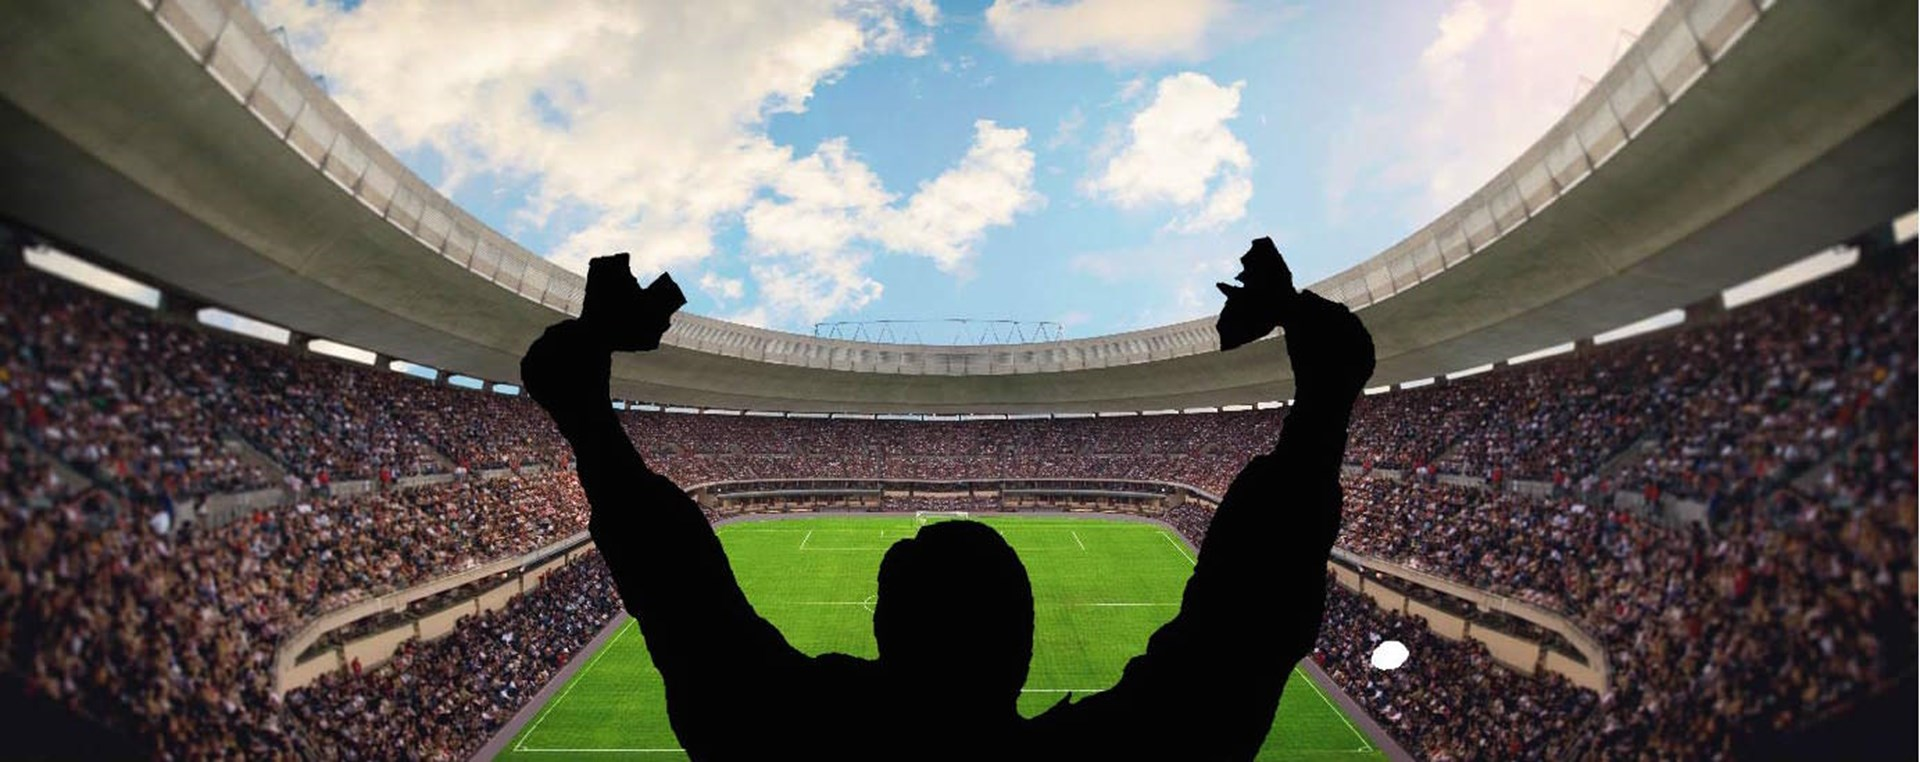 Sports Betting Promotions – Made a Strong Impact